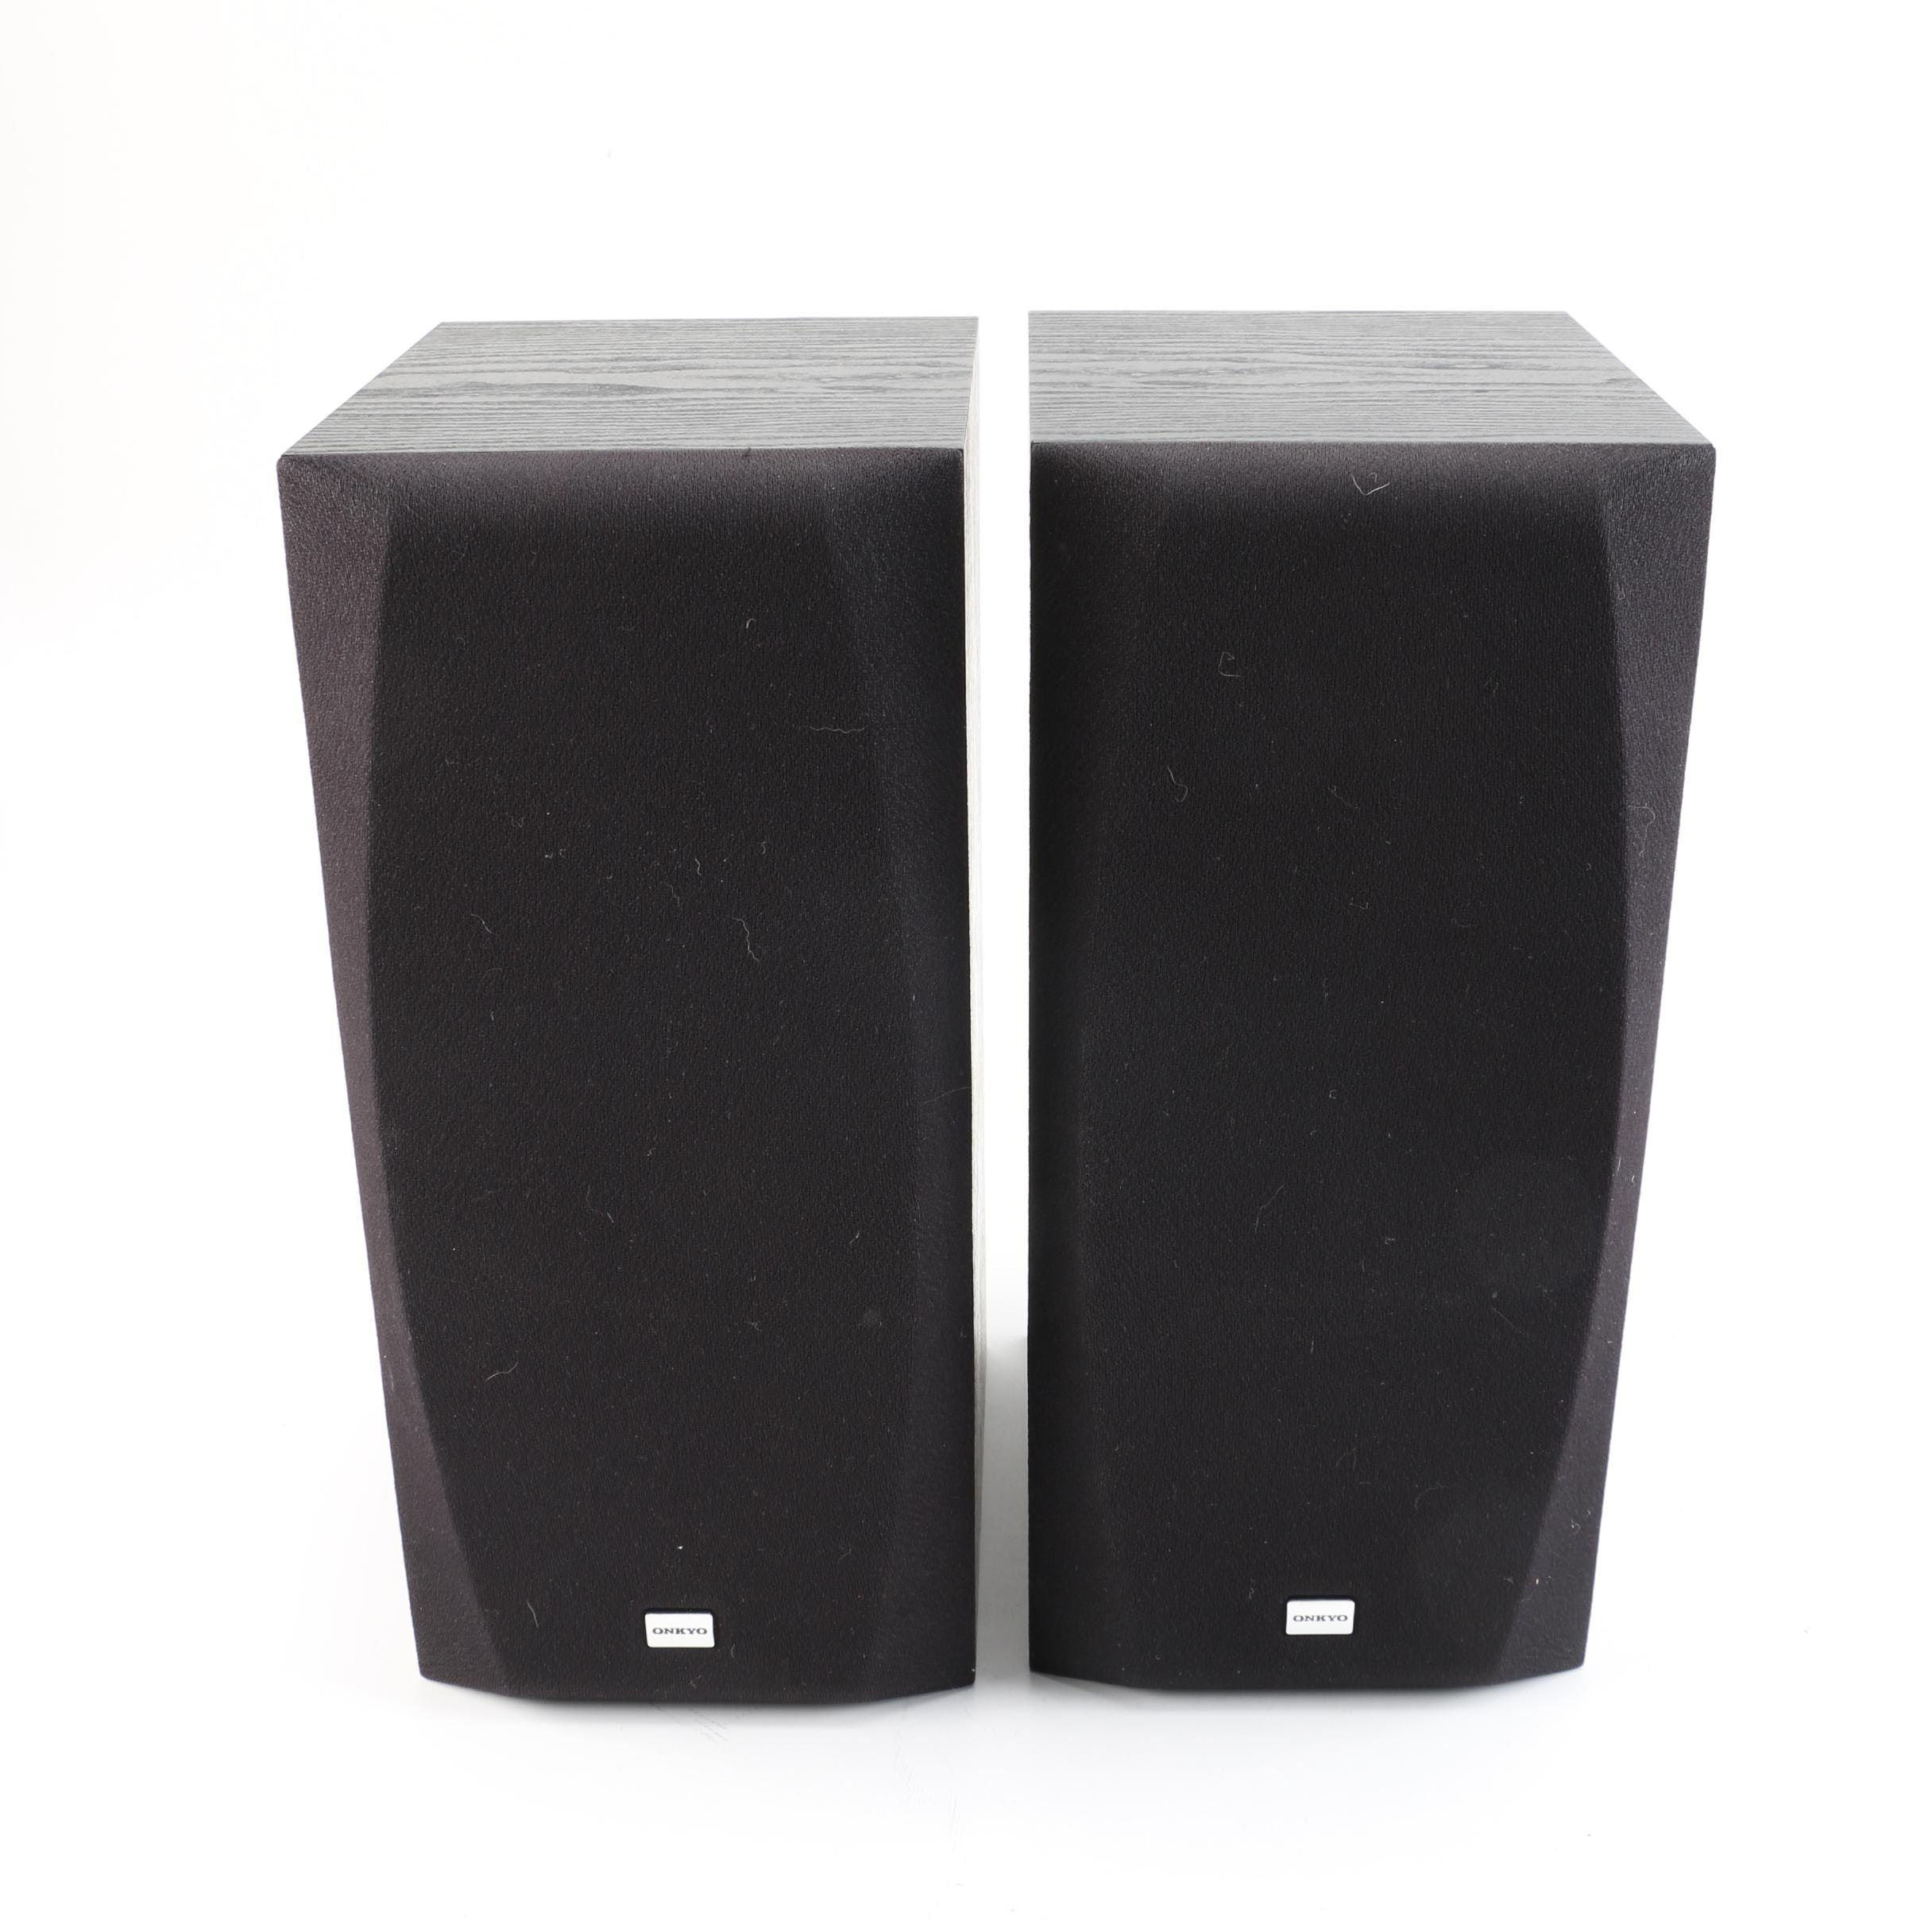 Set of Onkyo SKF-100 Speakers